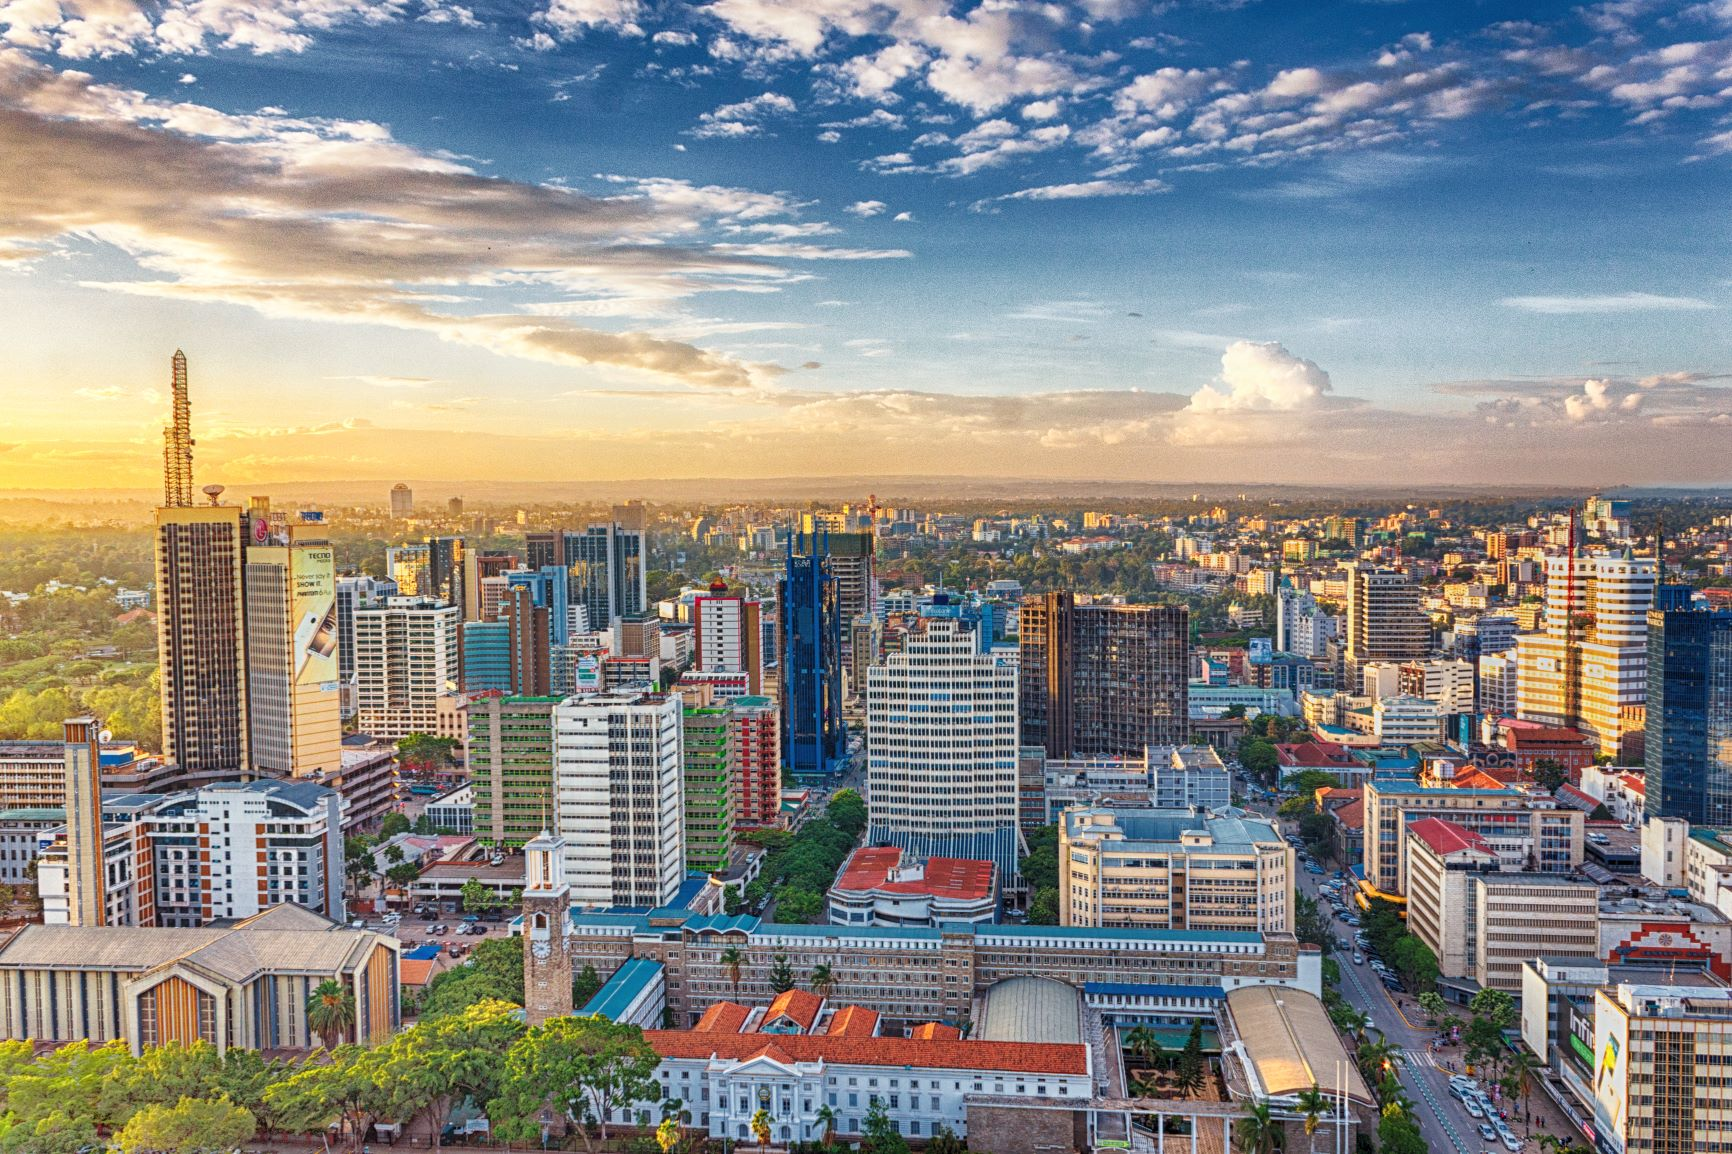 Kenya: Private sector credit growth is gaining momentum